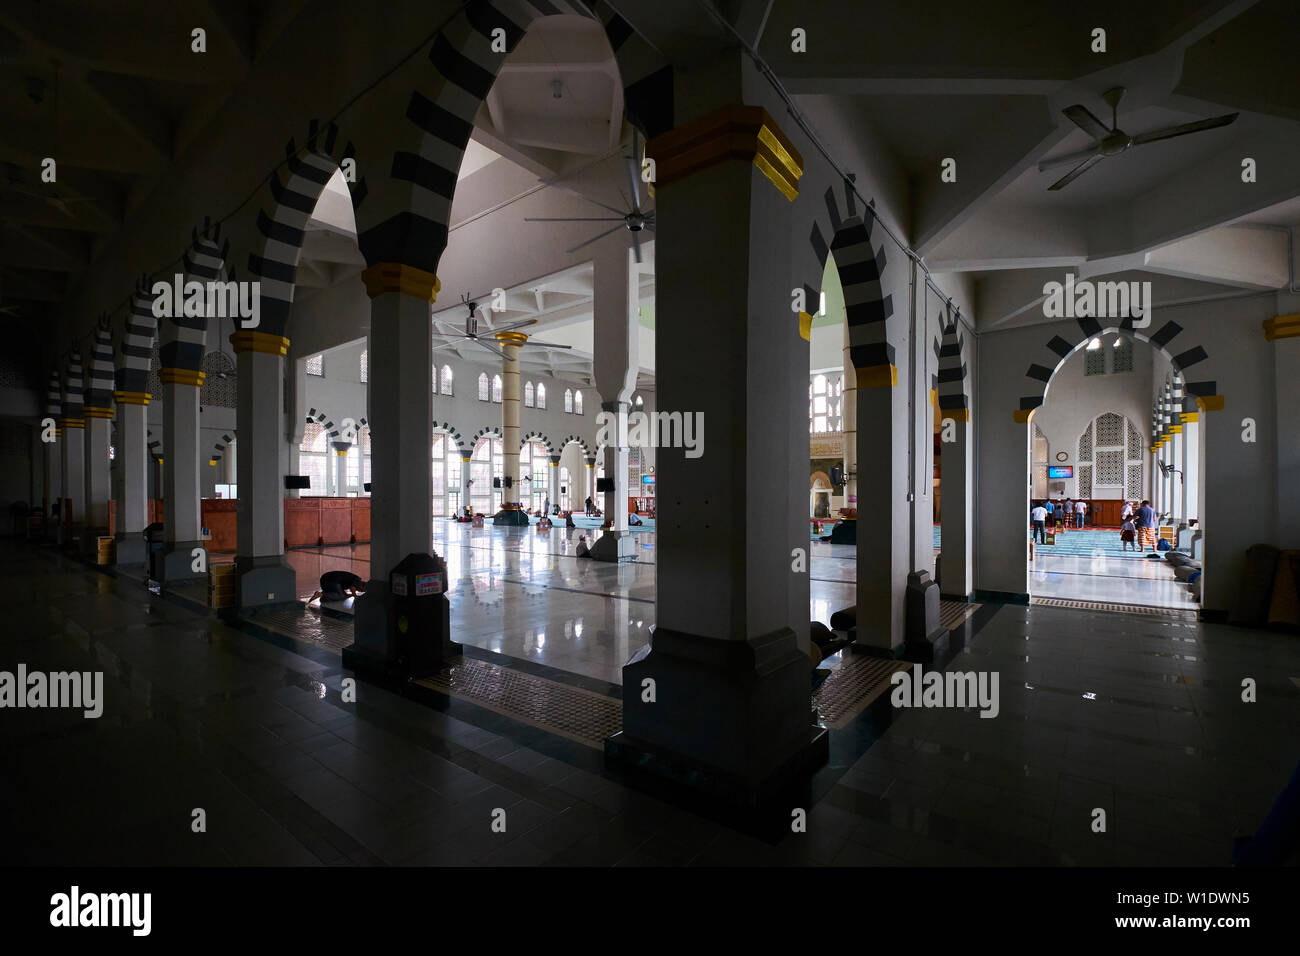 Inside the central courtyard space at the Moorish style main city Mosque, Masjid Bandaraya, in Kota Kinabalu, Borneo, Malaysia. - Stock Image